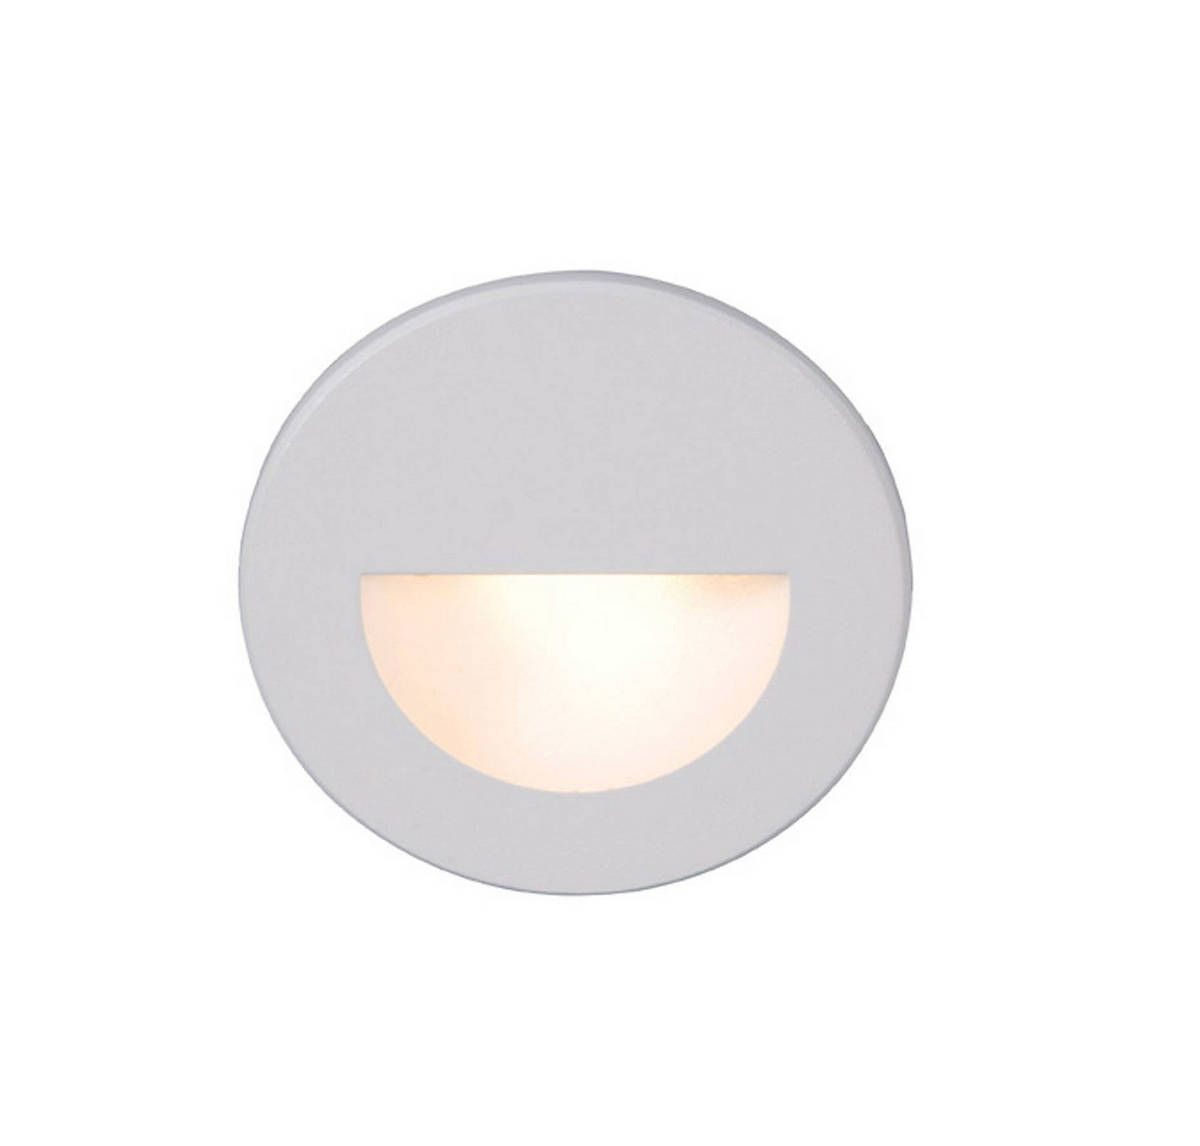 Wac Lighting 120v Ledme Round Indoor Outdoor Step And Wall Light In White In 2020 Led Step Lights Wall Lights Modern Wall Sconces